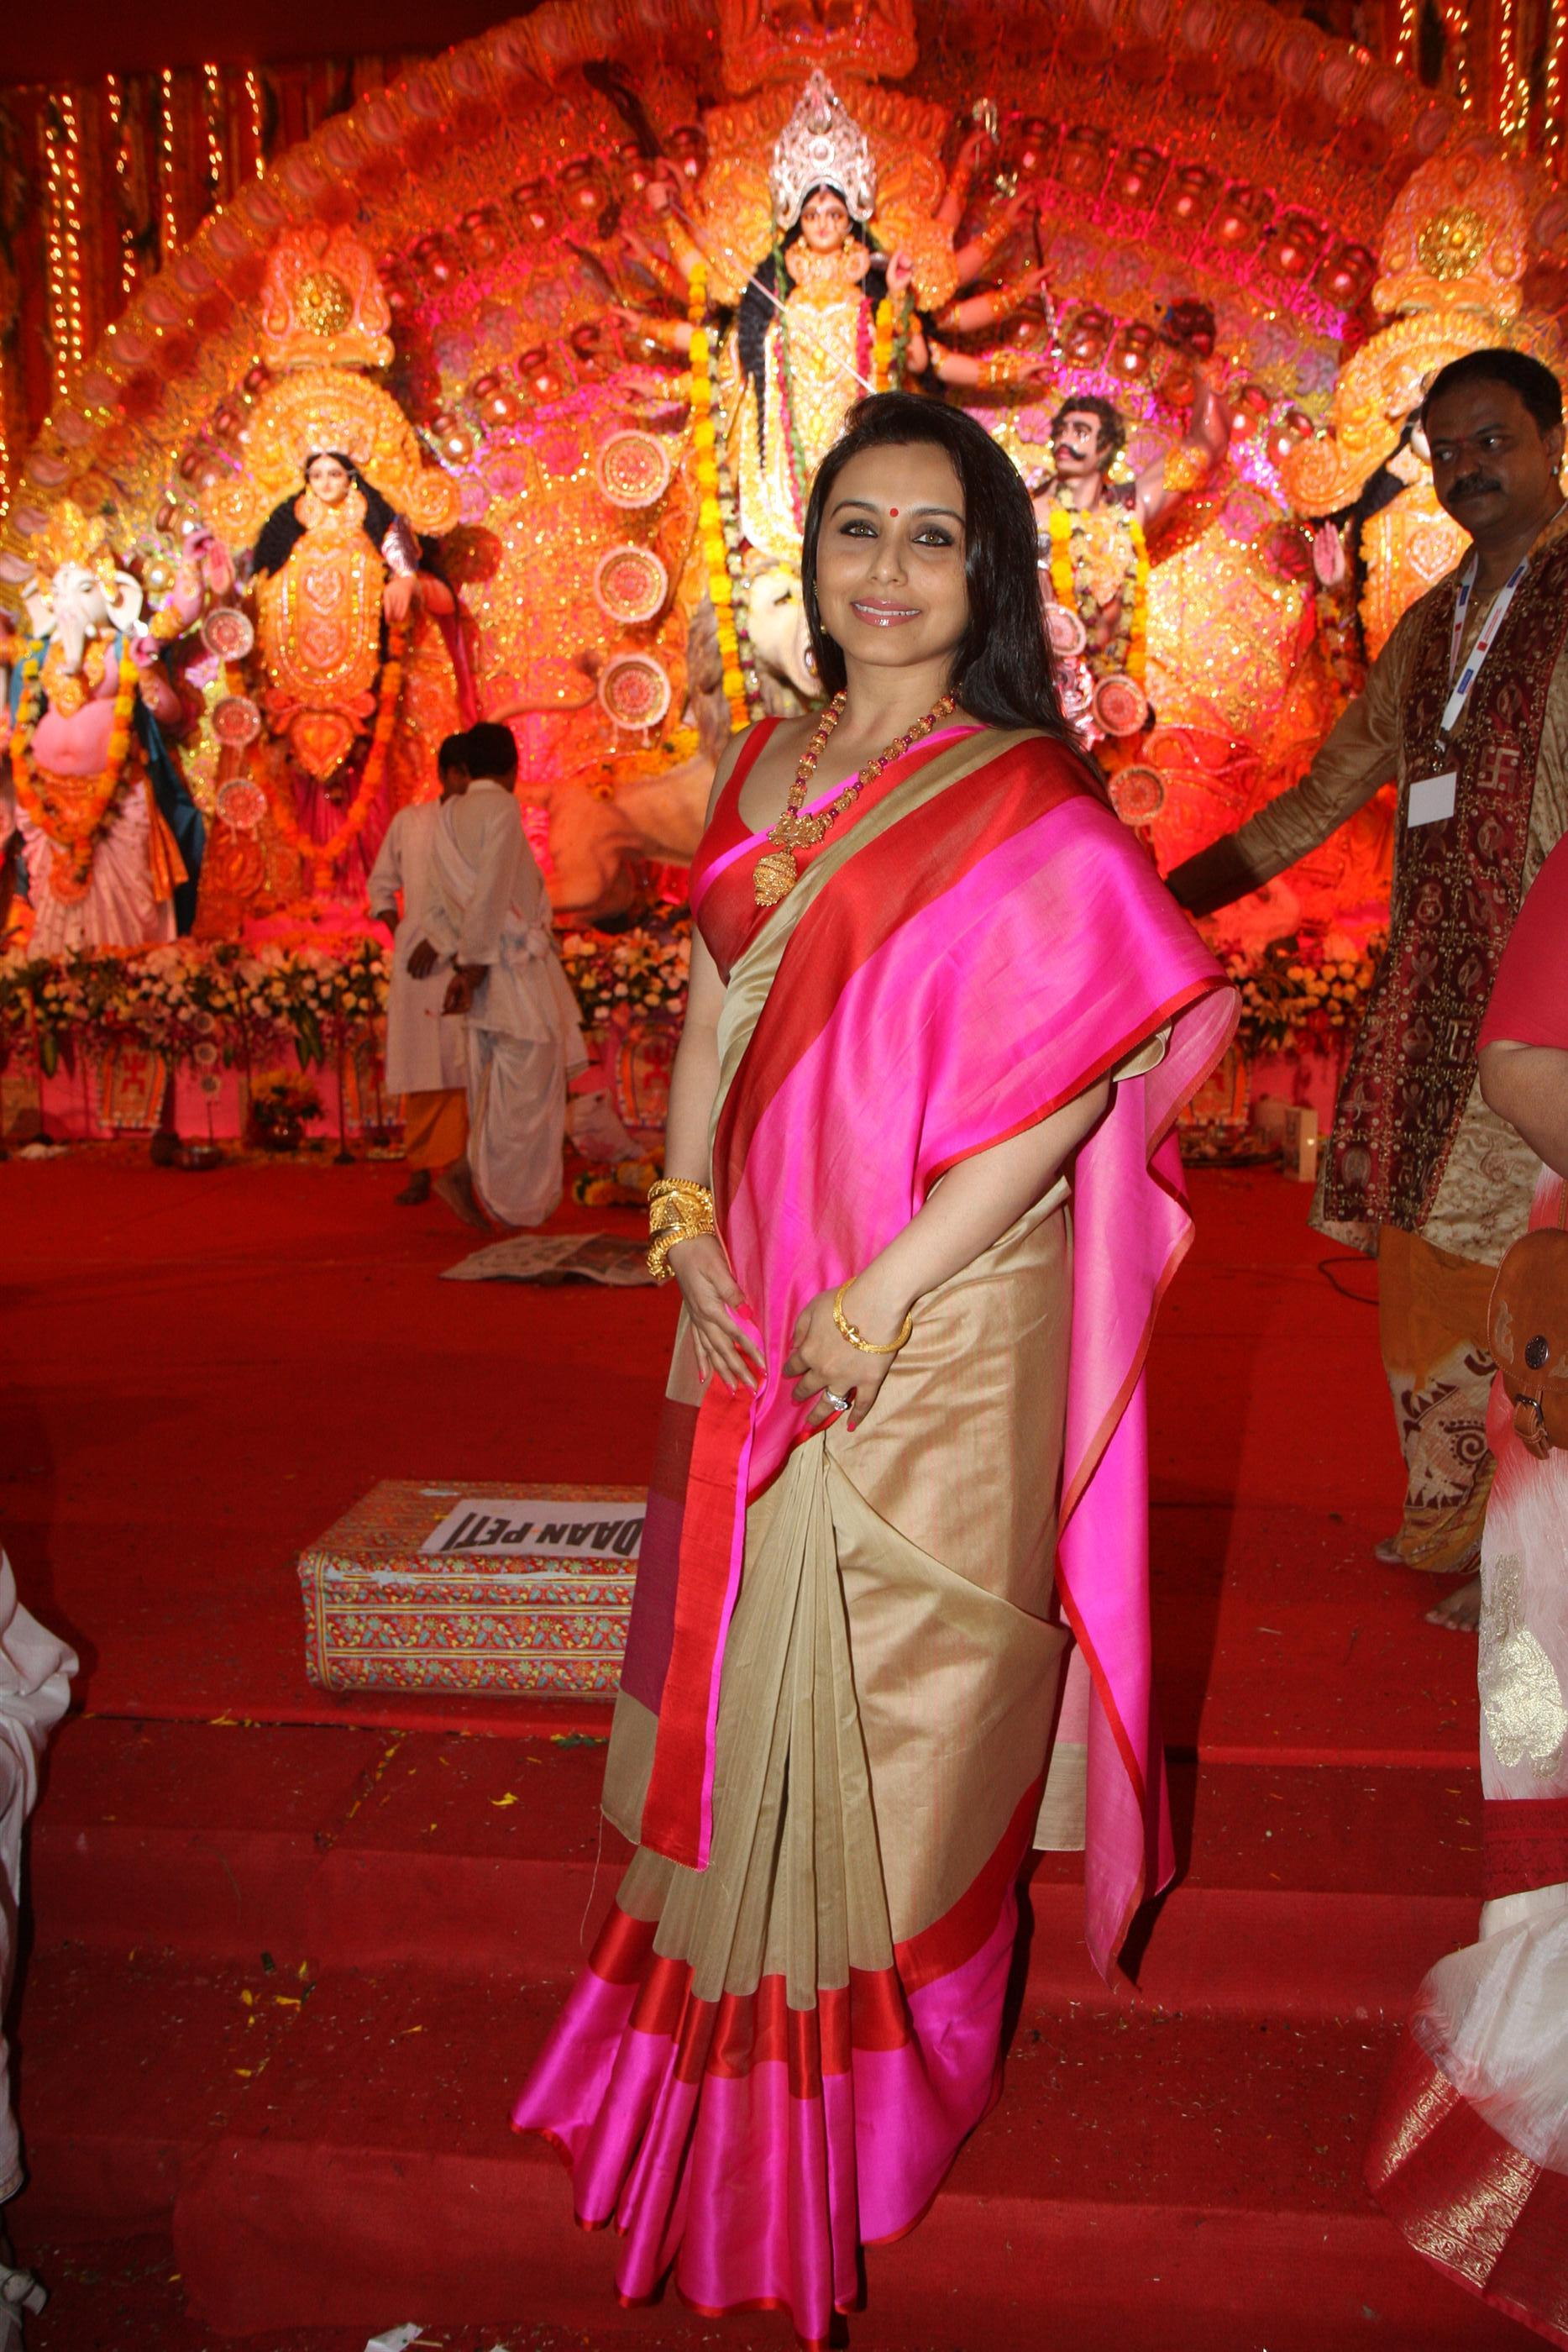 Bollywood's Bengali brigade celebrated Ashtami in traditional style complete with all the festivities.